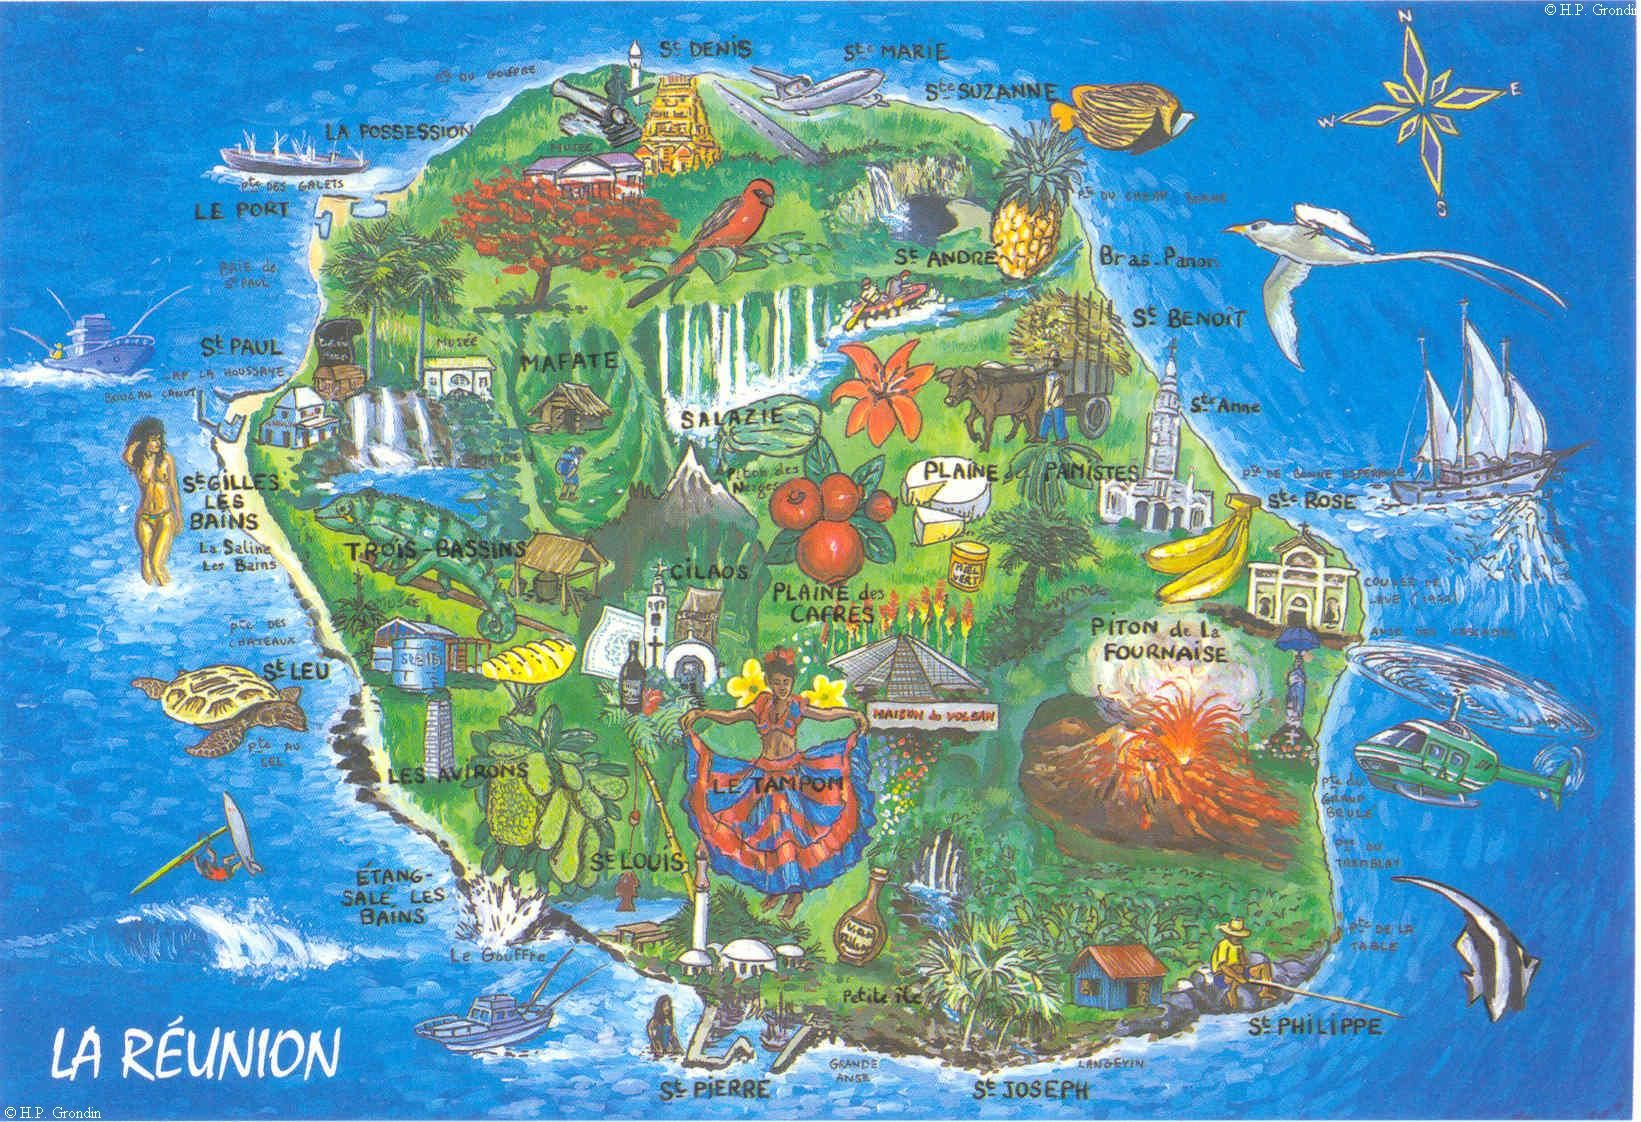 Connu Carte Ile de la Réunion | cartographie | Pinterest | La reunion  VS53